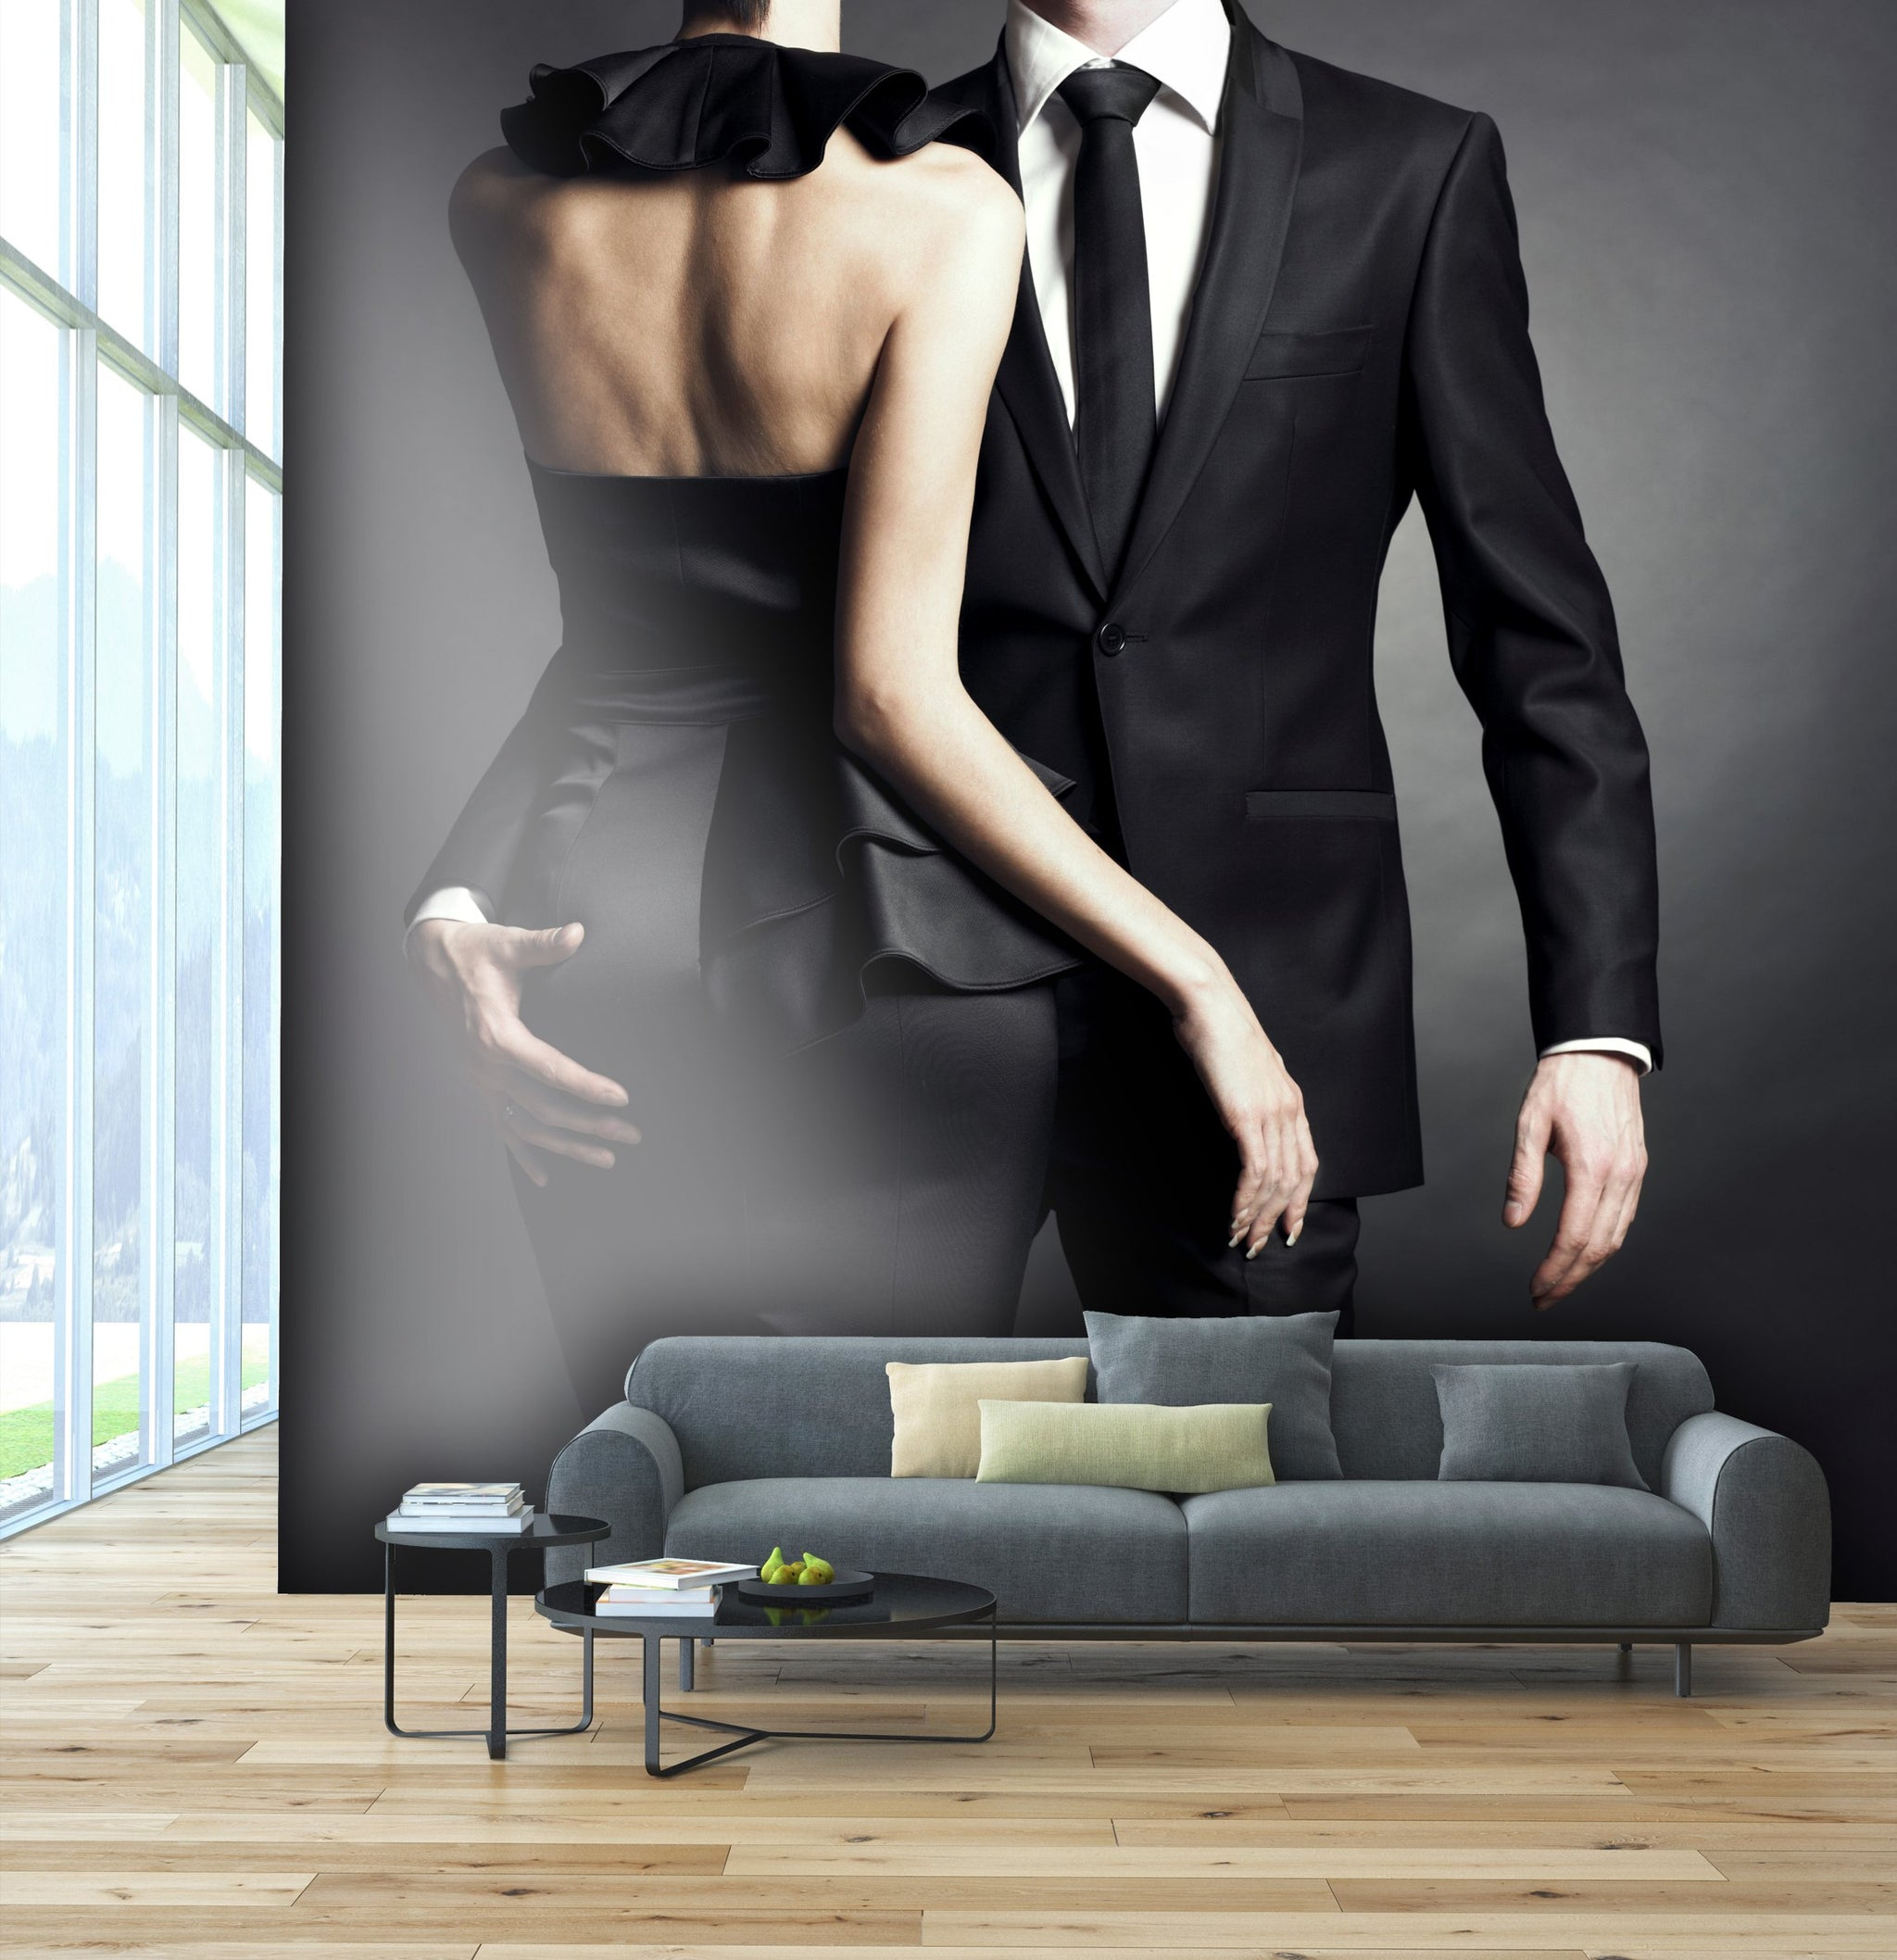 Wallpaper Young elegant couple SW138